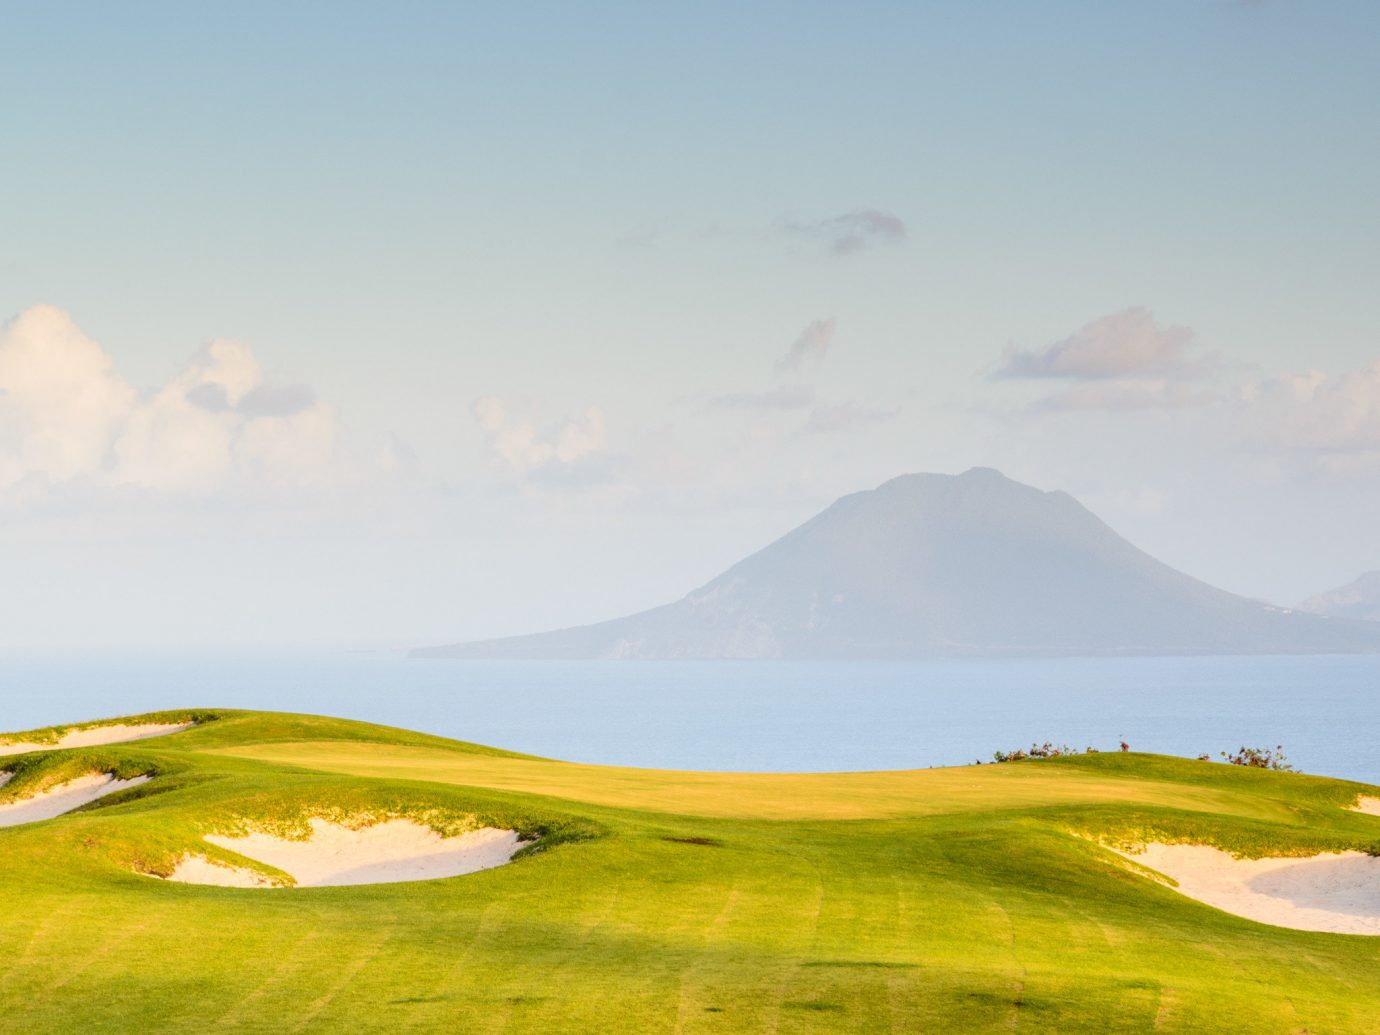 Hotels sky outdoor grass Nature mountain grassland geographical feature plain natural environment ecosystem horizon hill sport venue morning prairie steppe plateau landscape golf course meadow clouds day highland lush